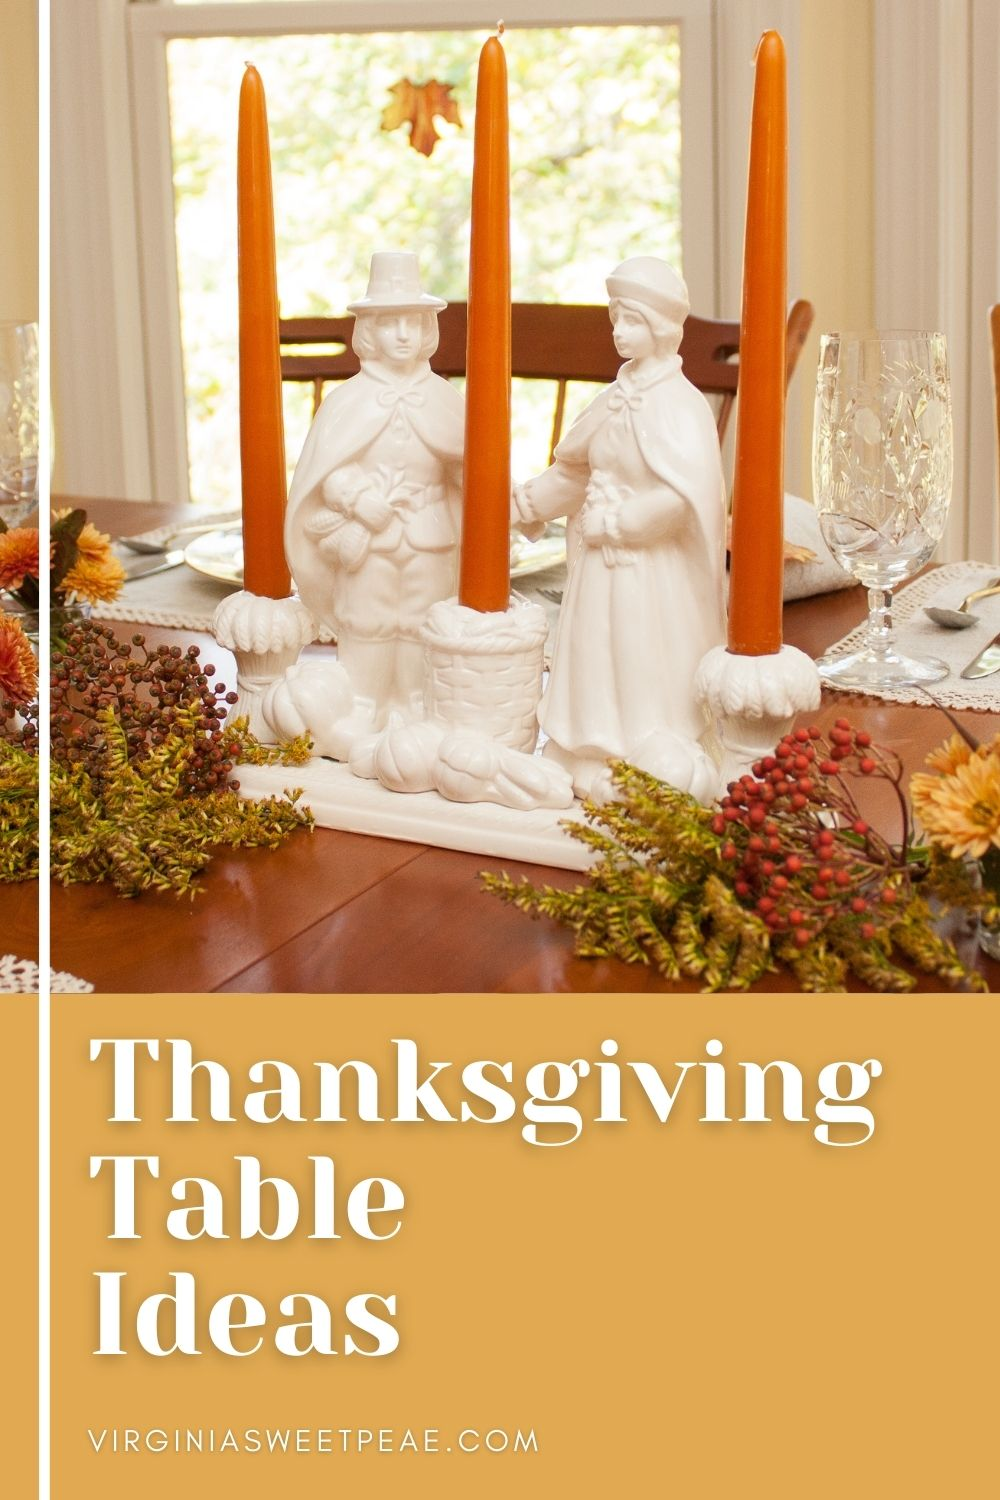 Thanksgiving Table Ideas - Get 20+ ideas for decorating a table for Thanksgiving. via @spaula